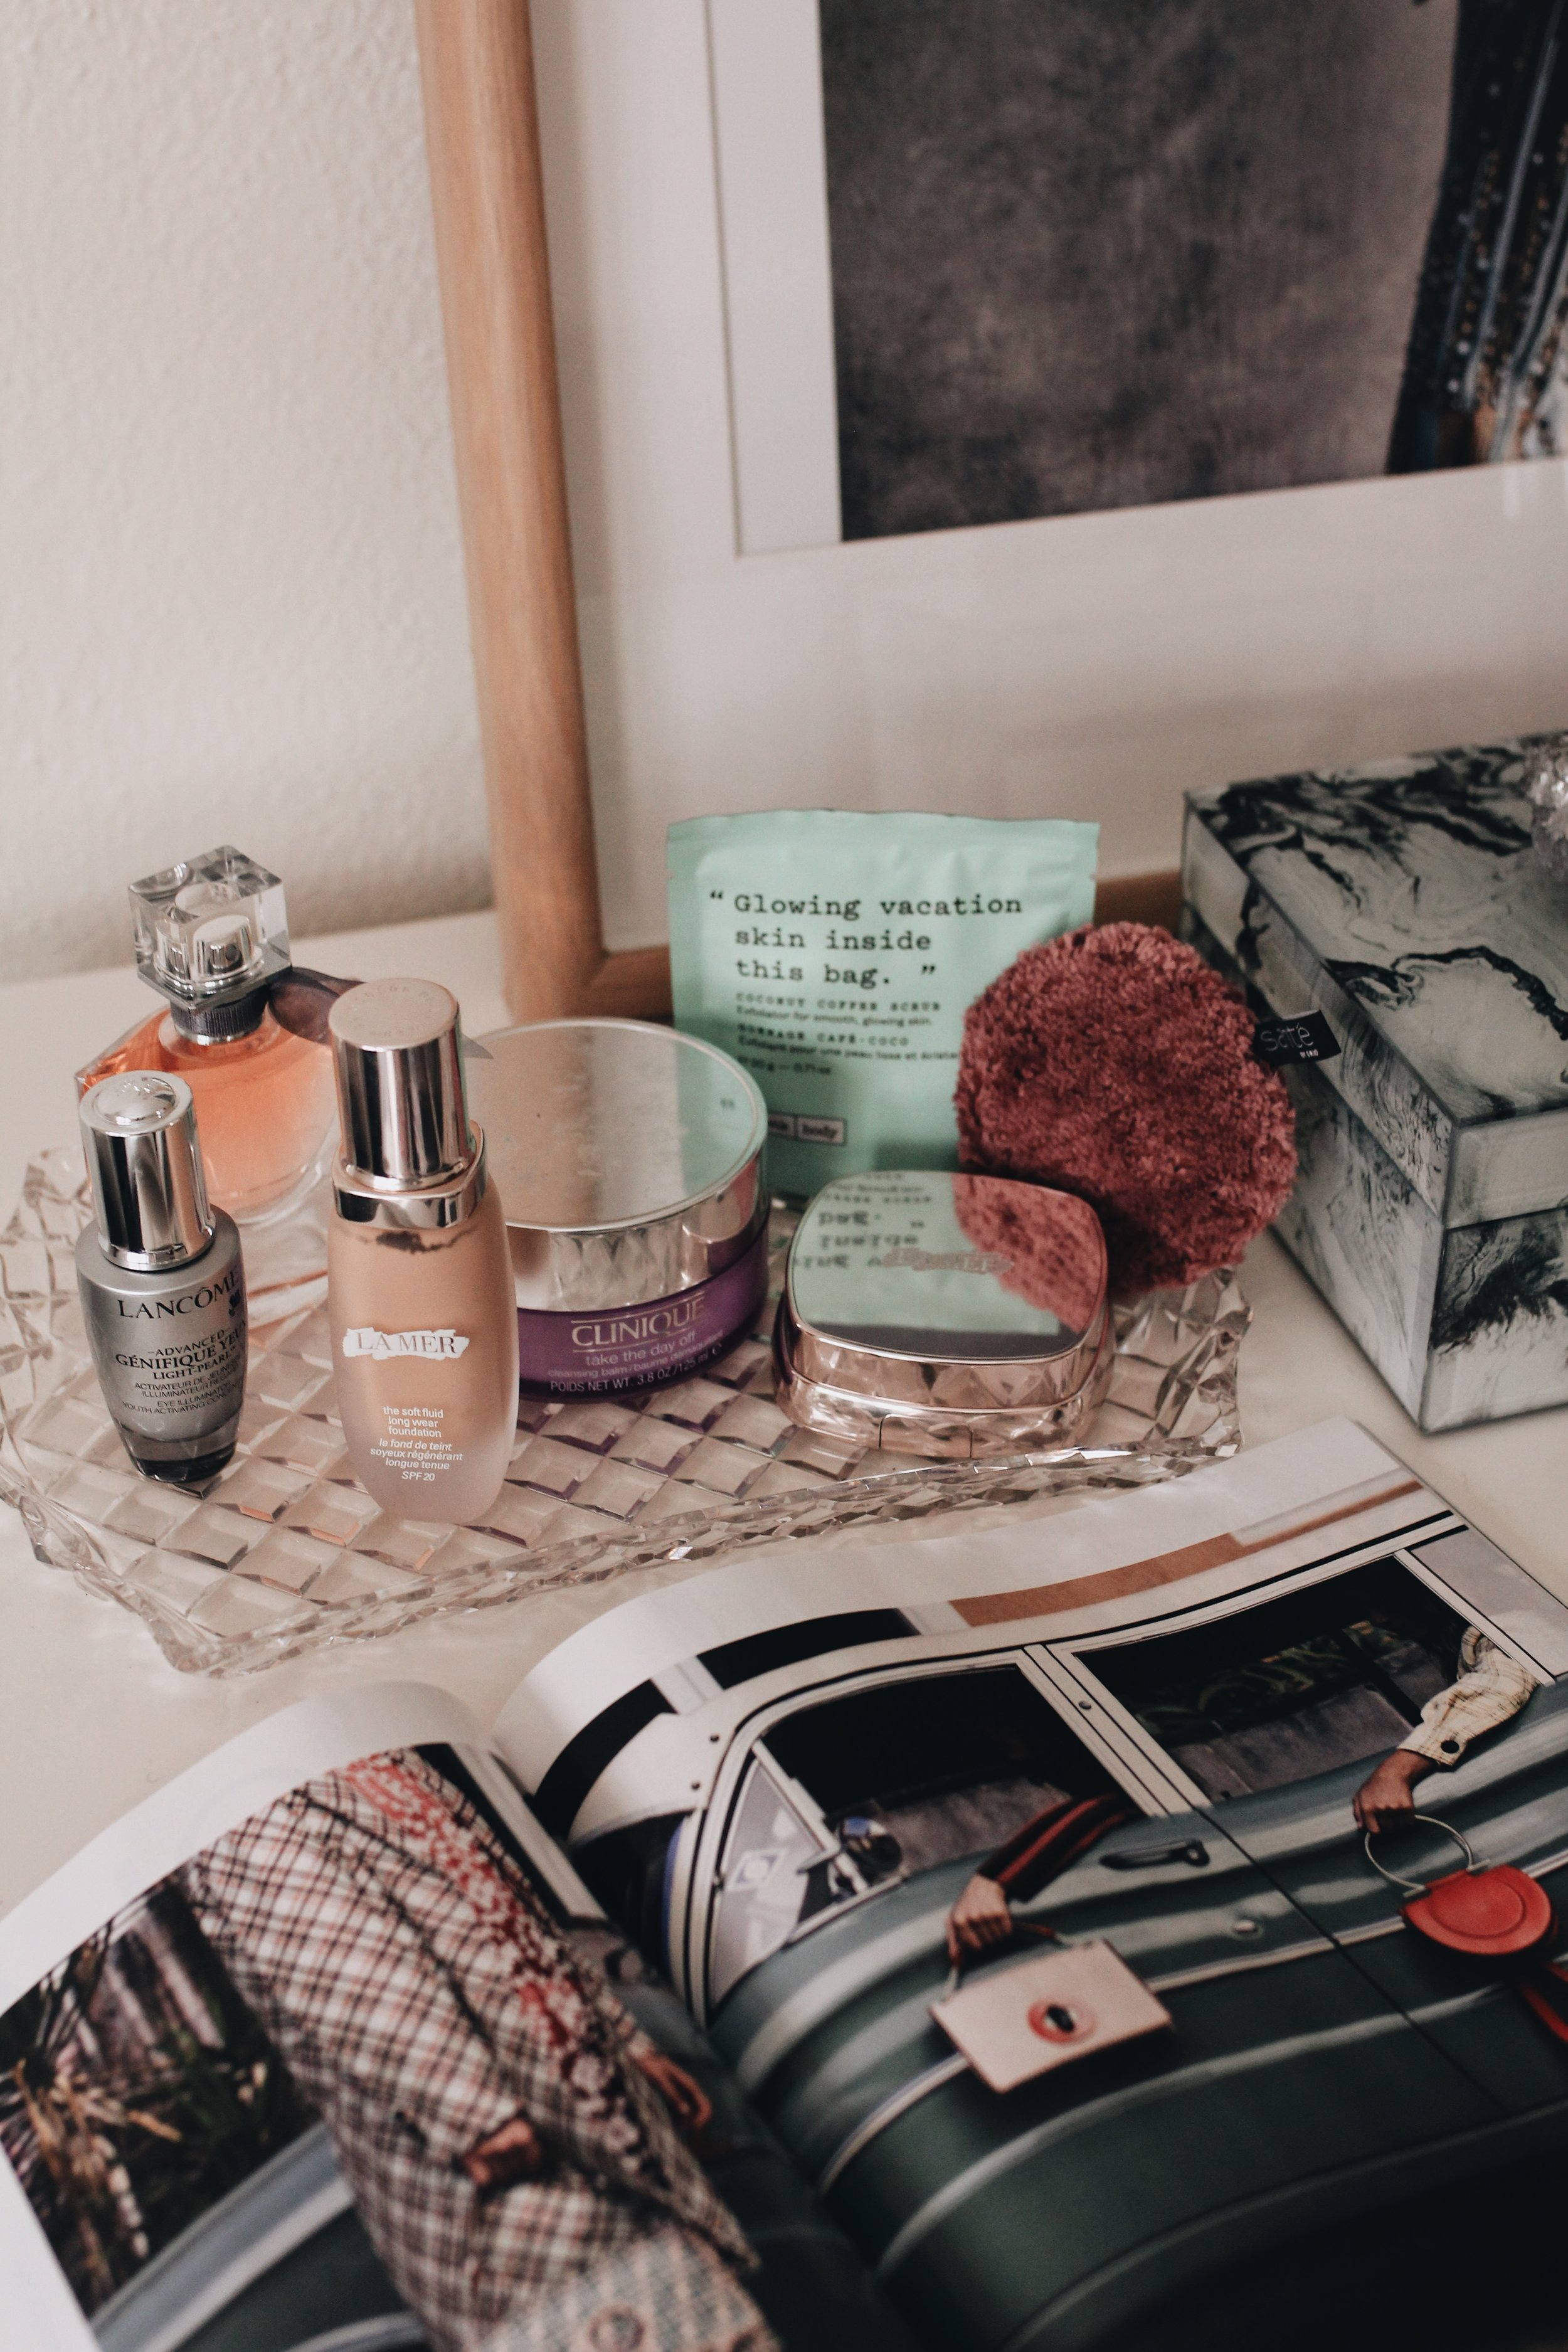 Beauty items of the month